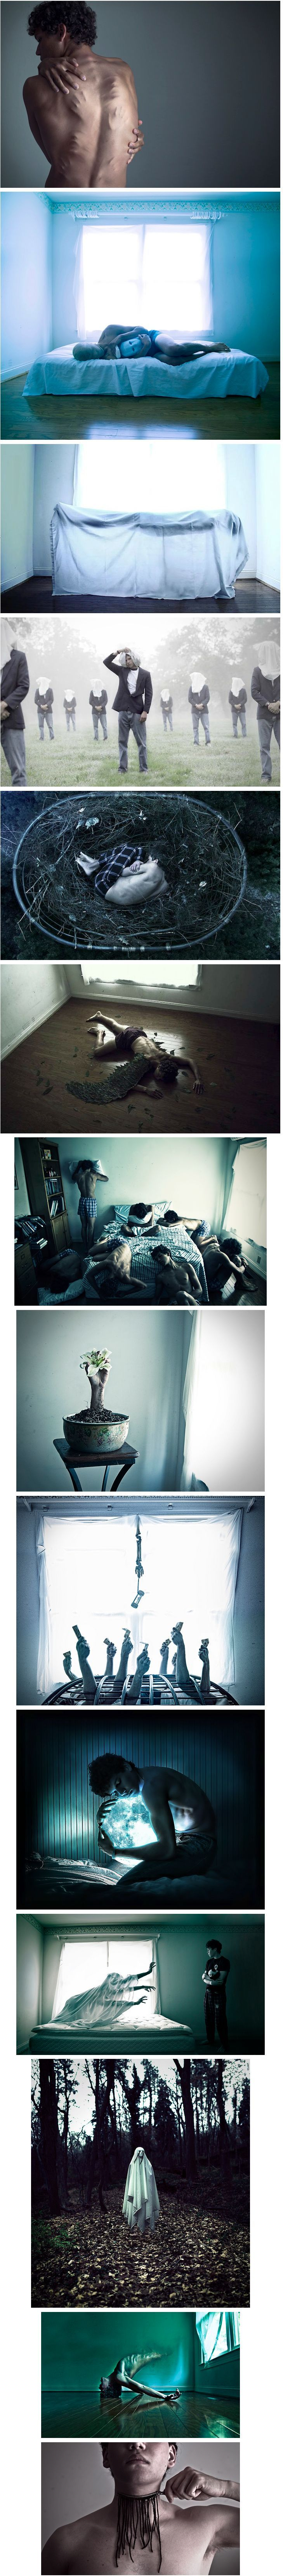 24 Haunting Photos Show What Depression Really Feels Like. Photo's by Christian Hopkins